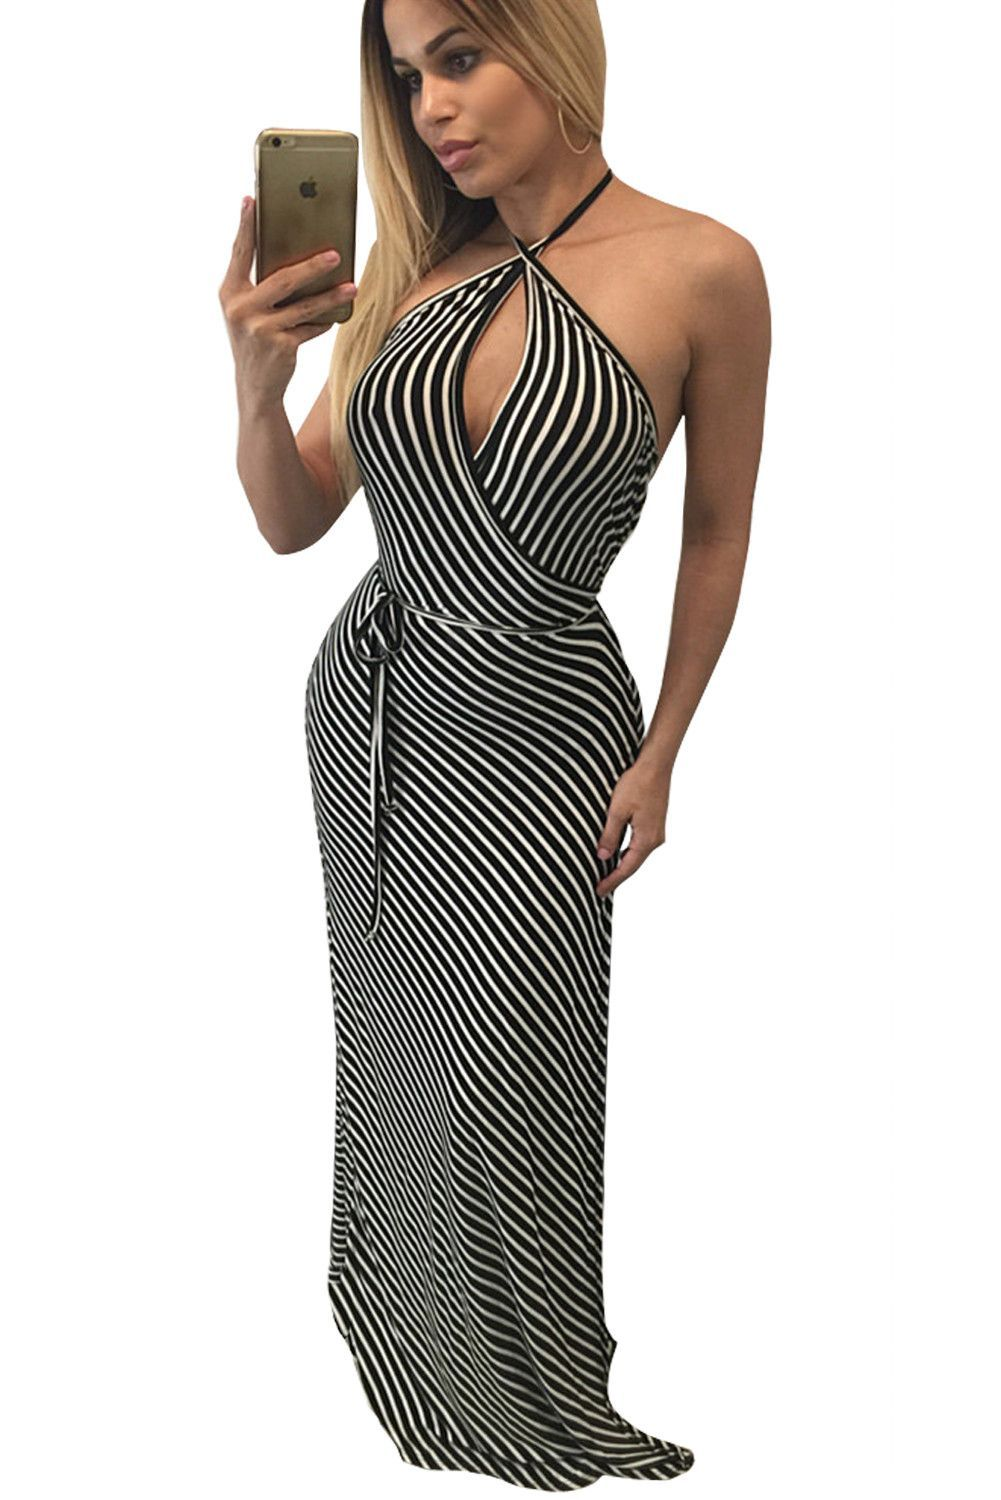 Fashionable but simple contrast stripes wrapped halter her maxi